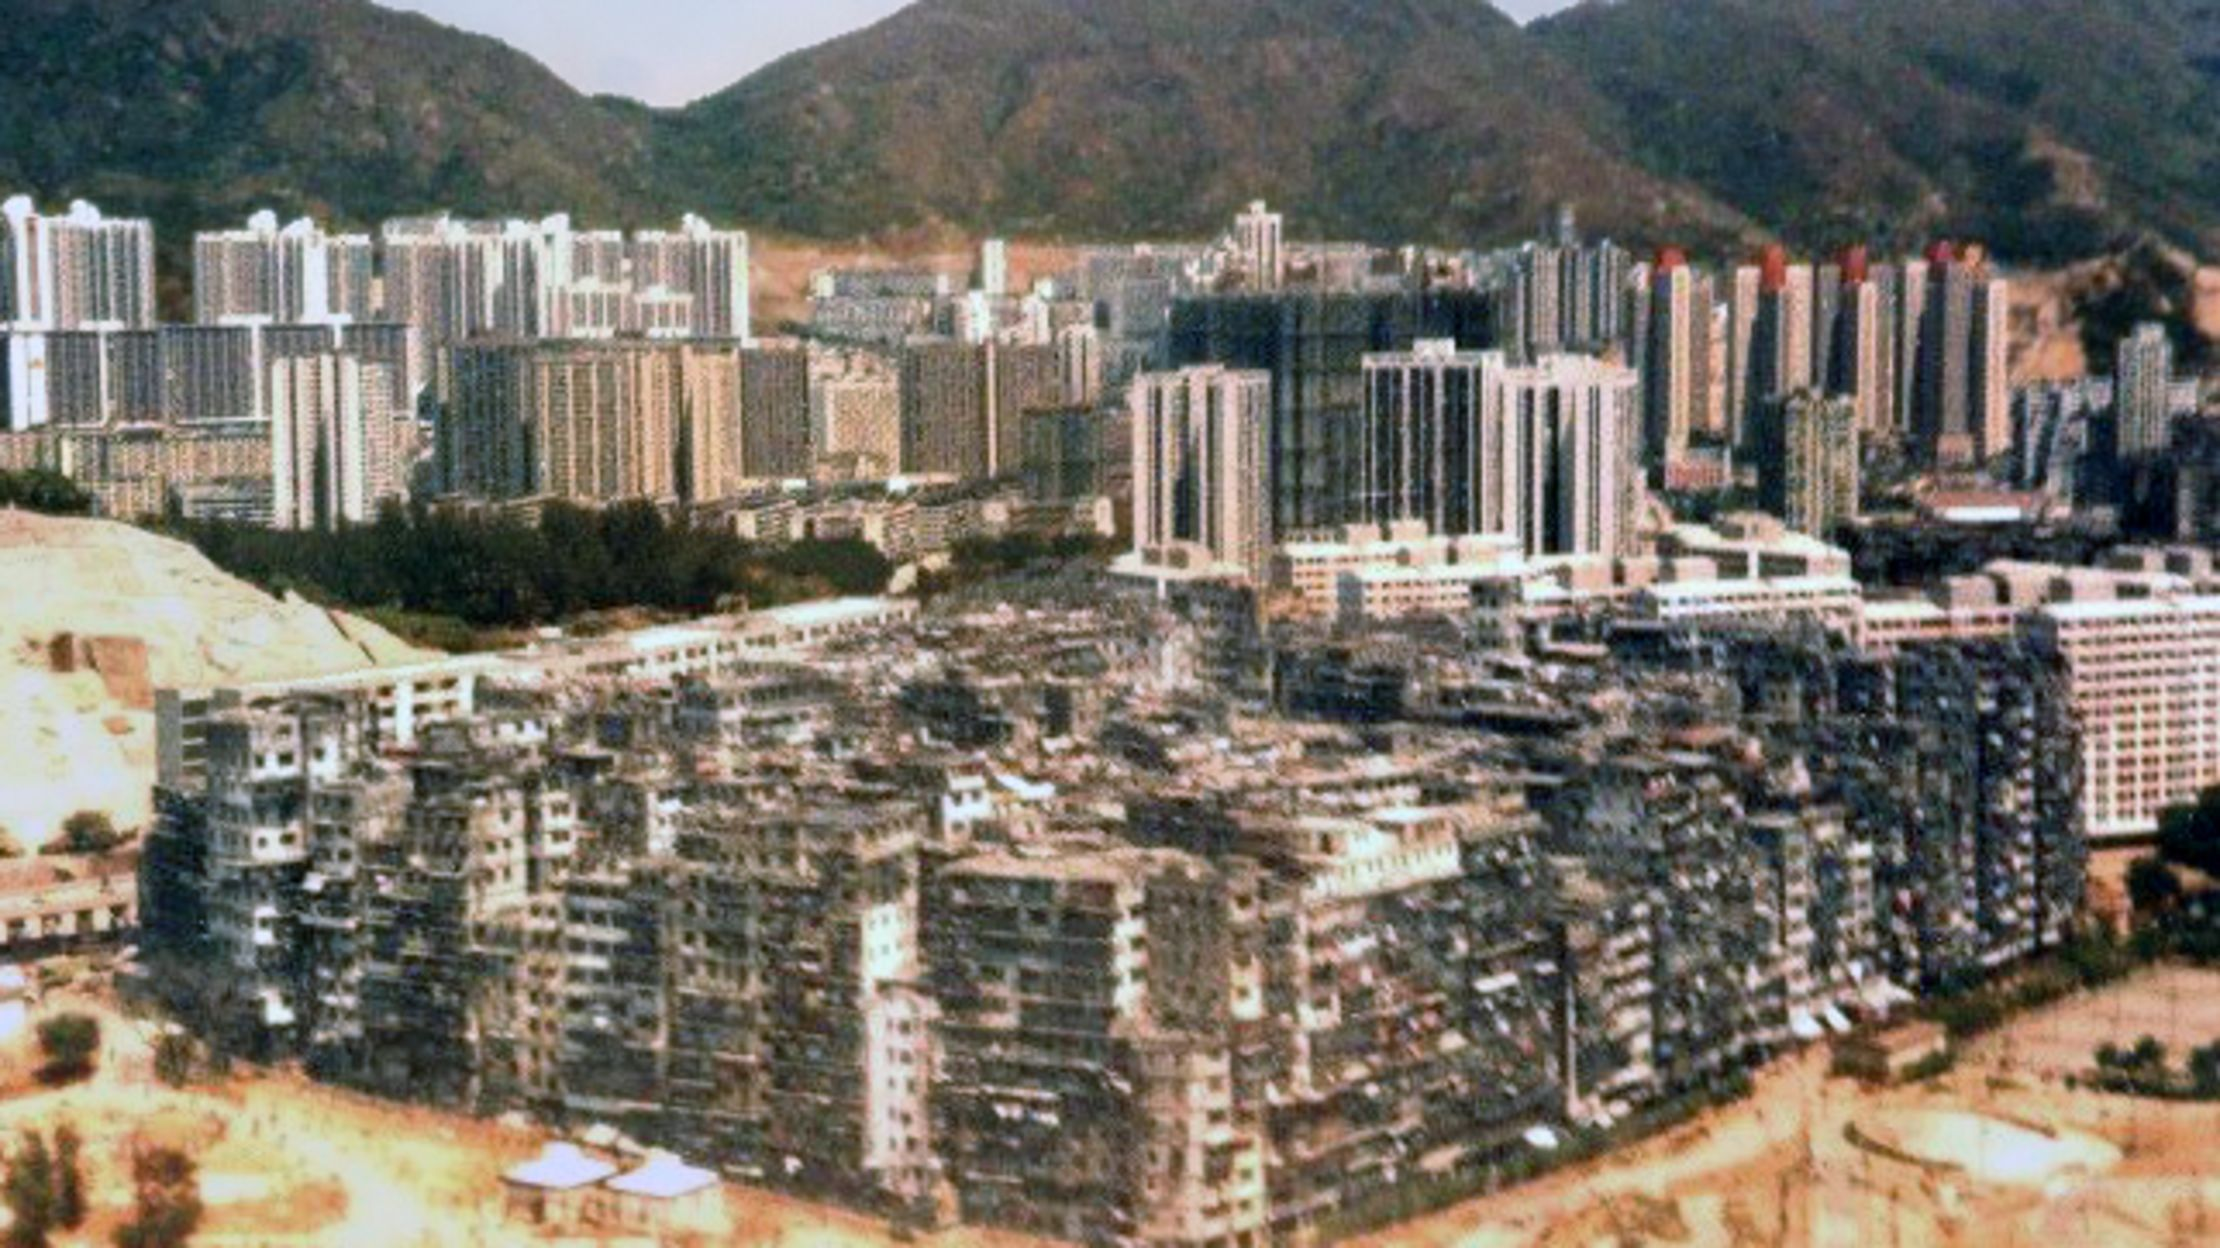 The Insane Kowloon Walled City